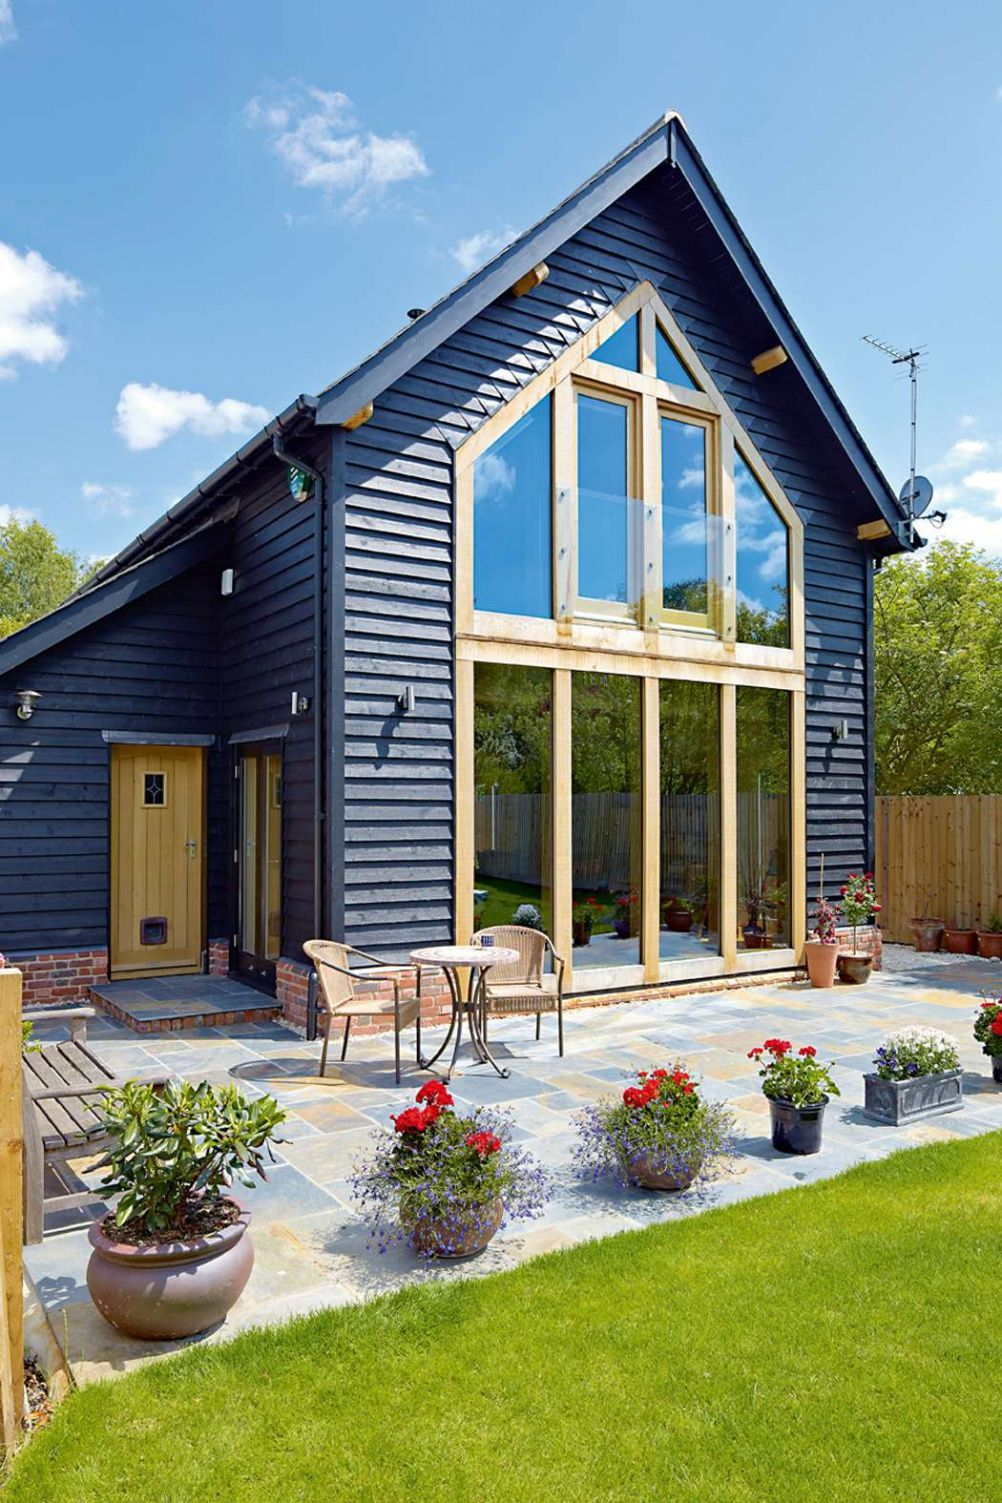 A picturesque oak frame barnstyle selfbuild home in